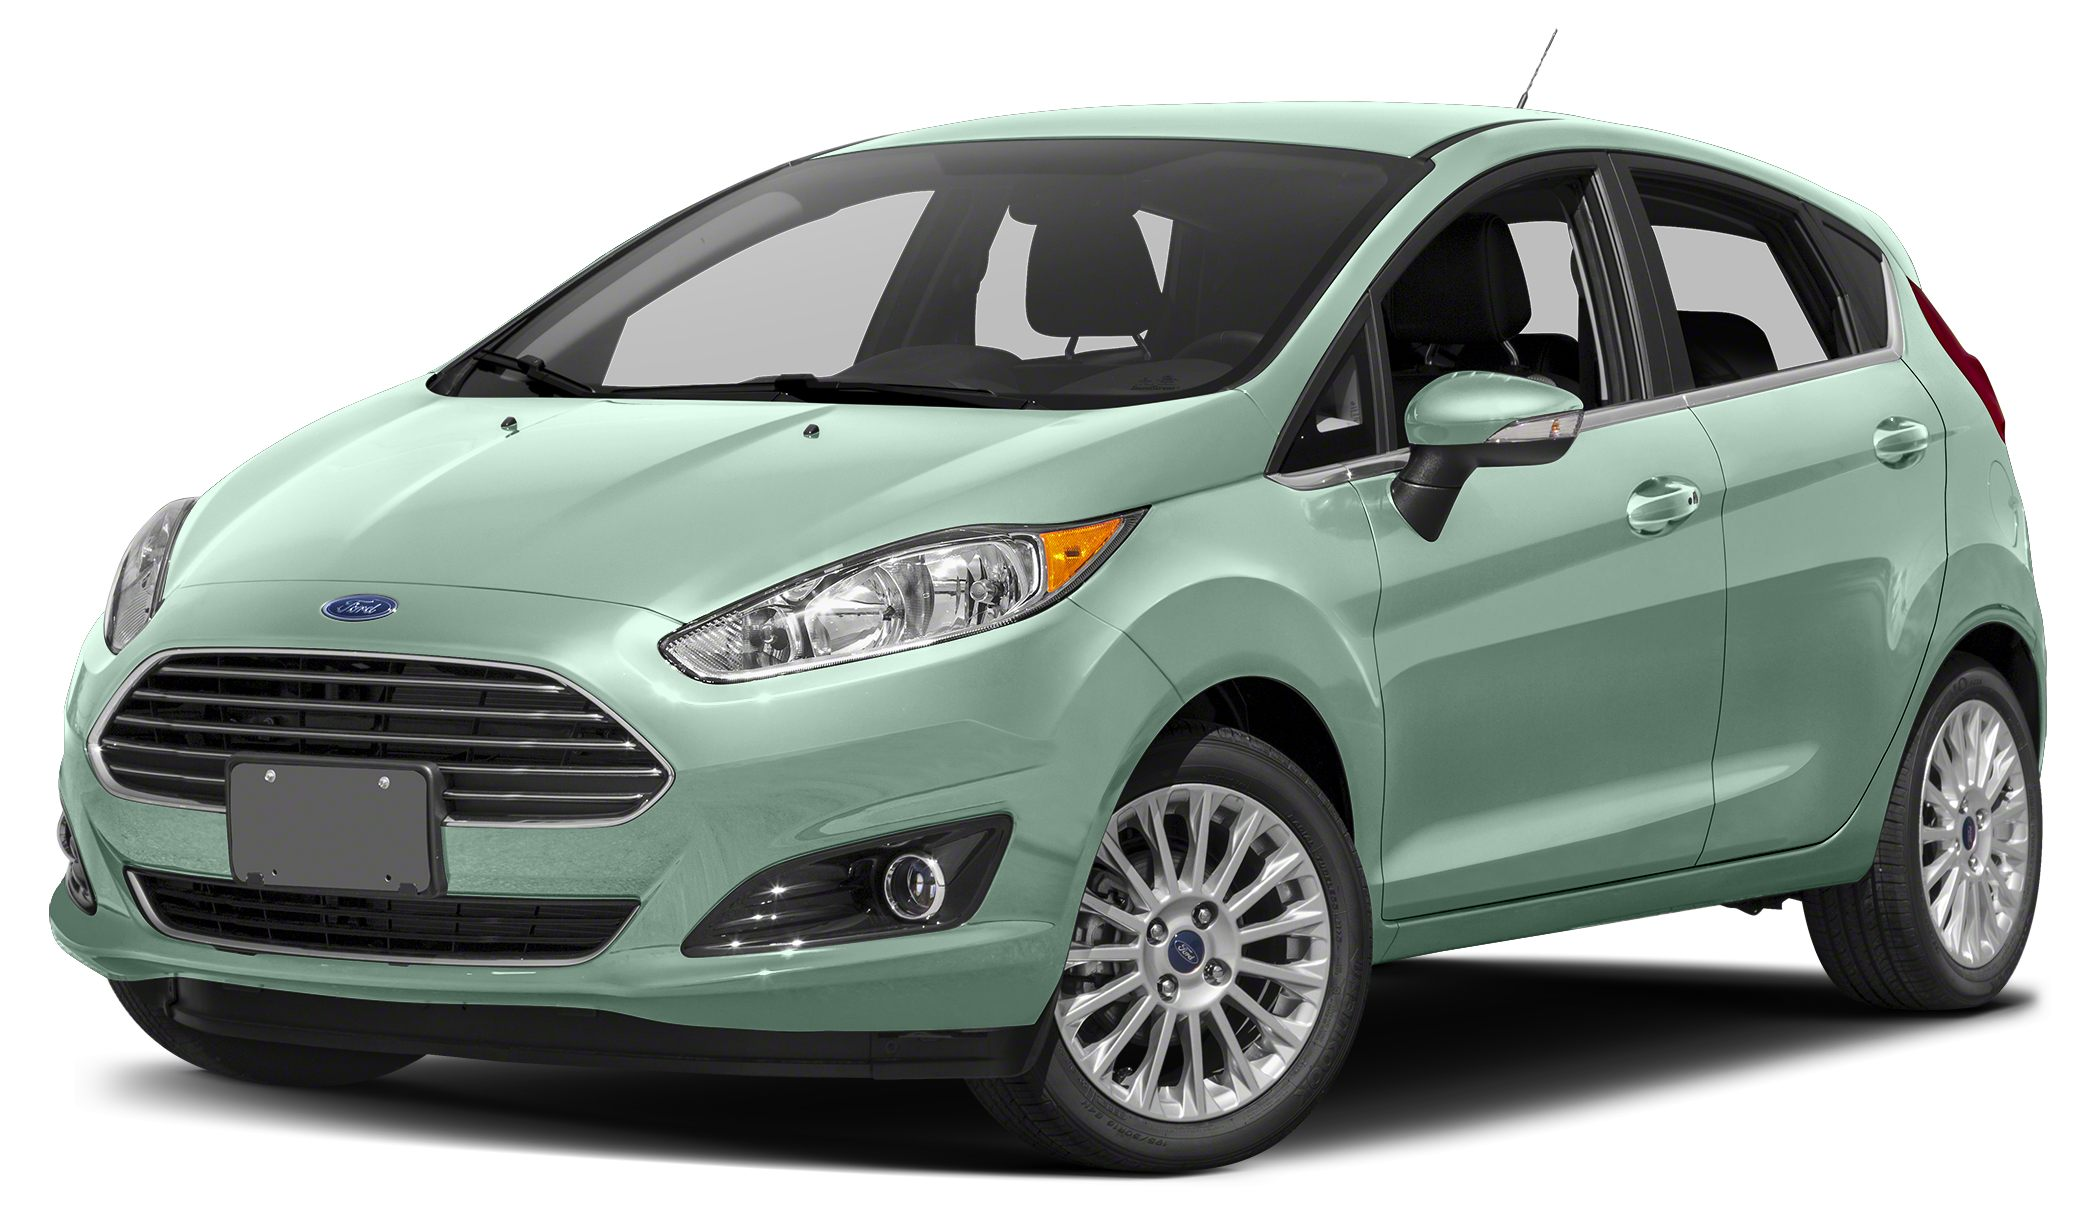 2017 Ford Fiesta Titanium 2017 Ford Fiesta Titanium 3727 HighwayCity MPG Price includes 3000